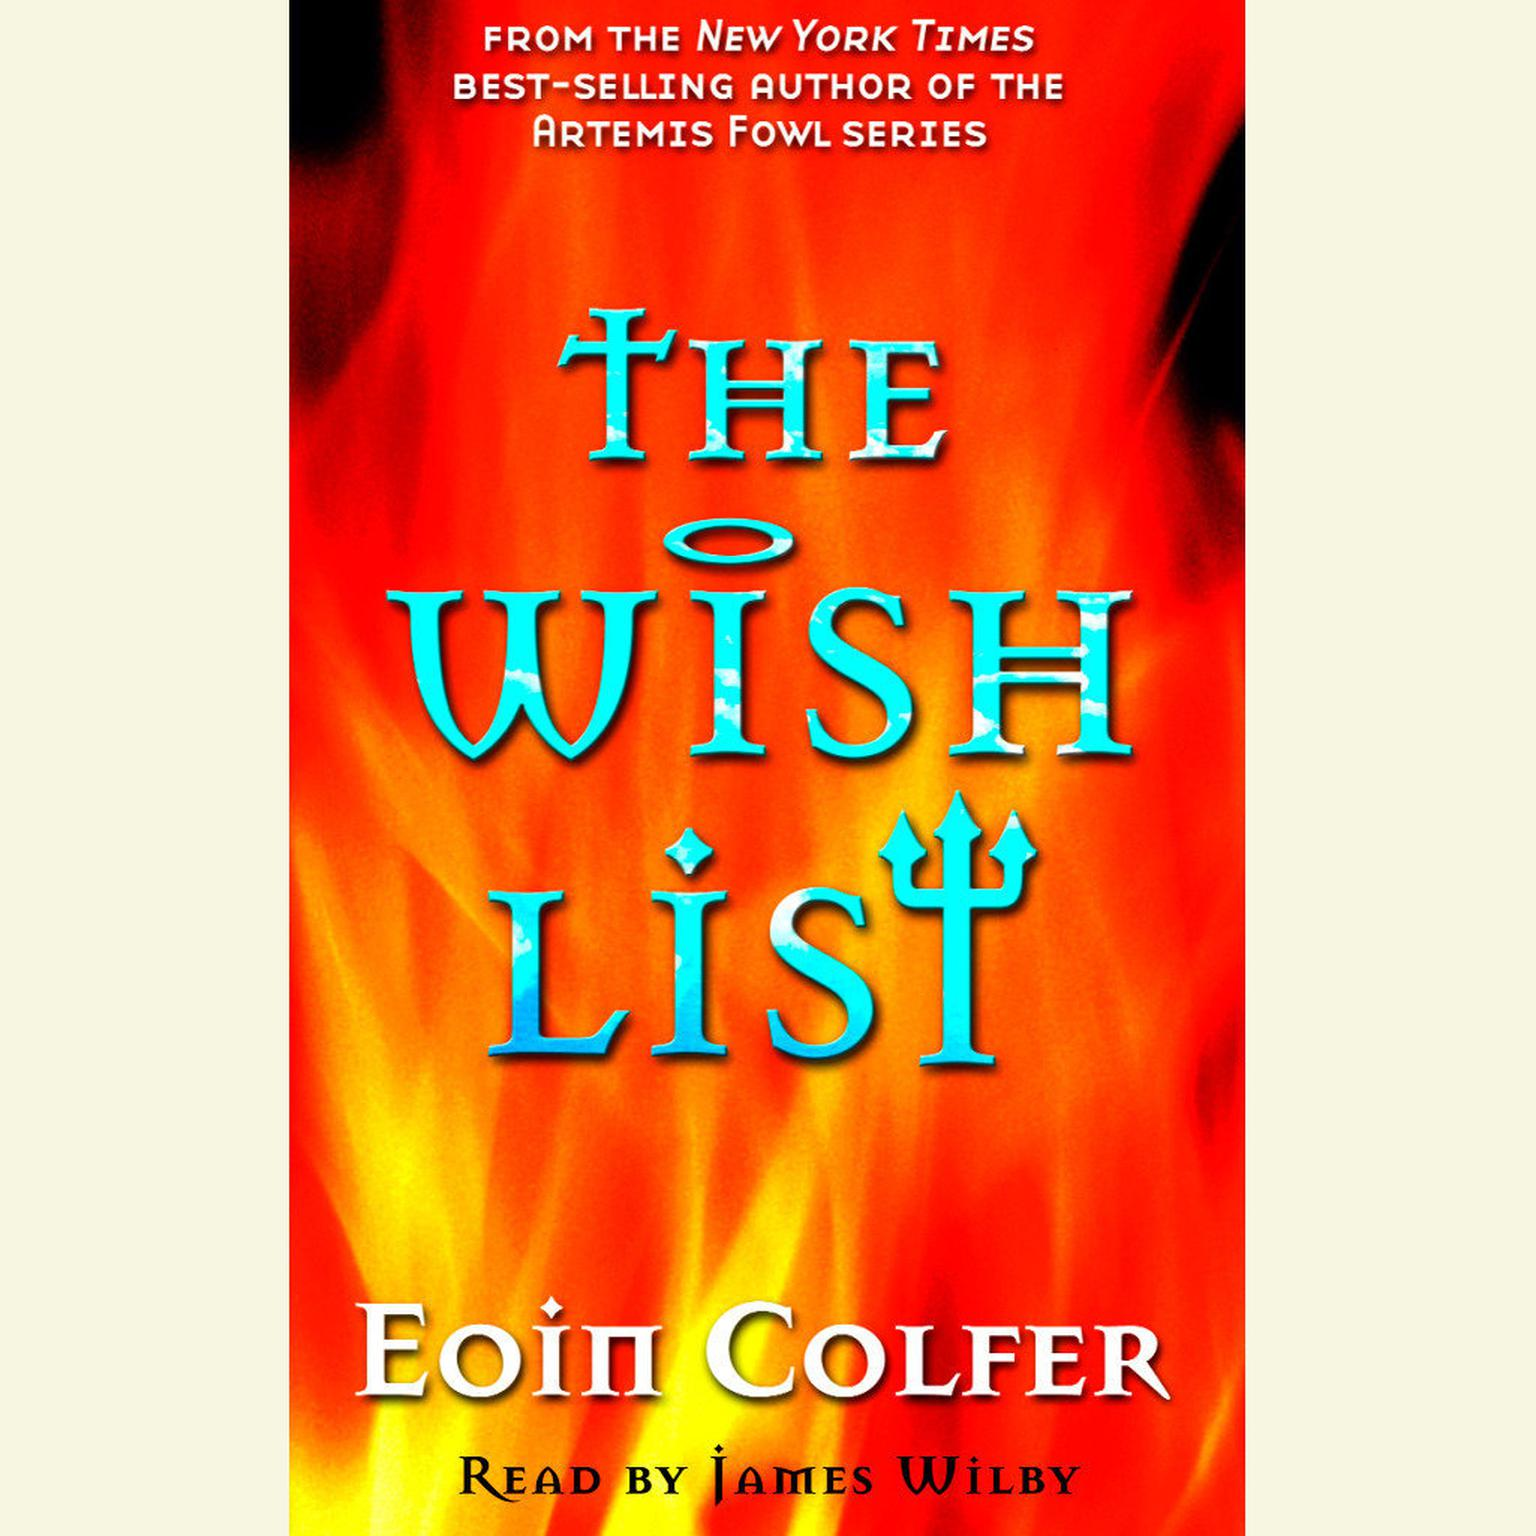 Printable The Wish List Audiobook Cover Art